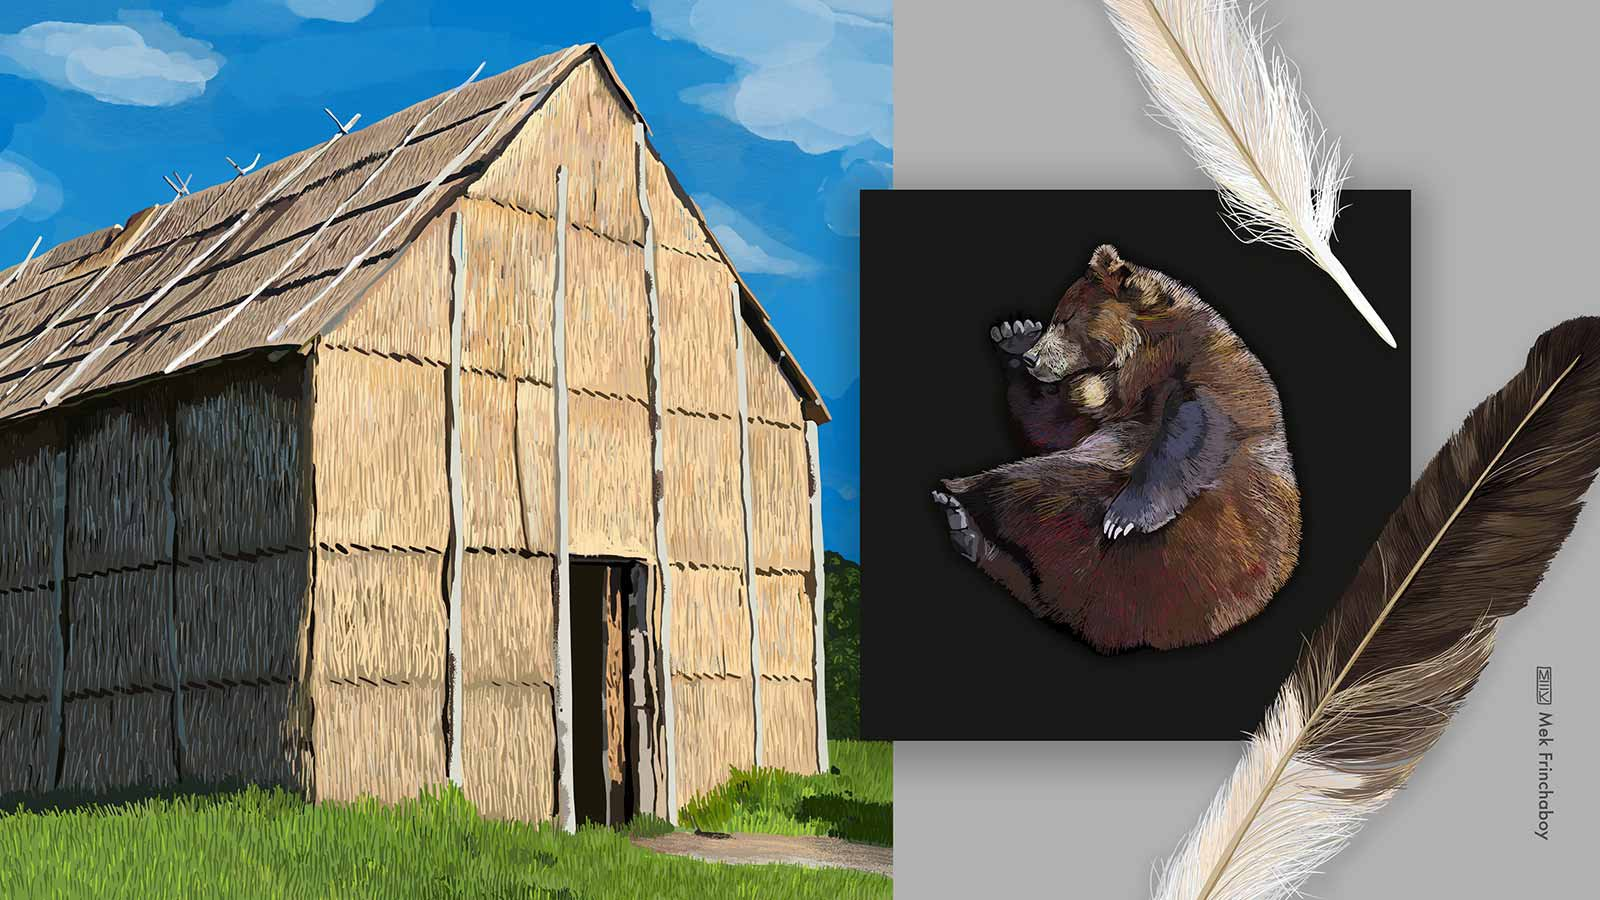 Illustration of longhouse, bear, and feather